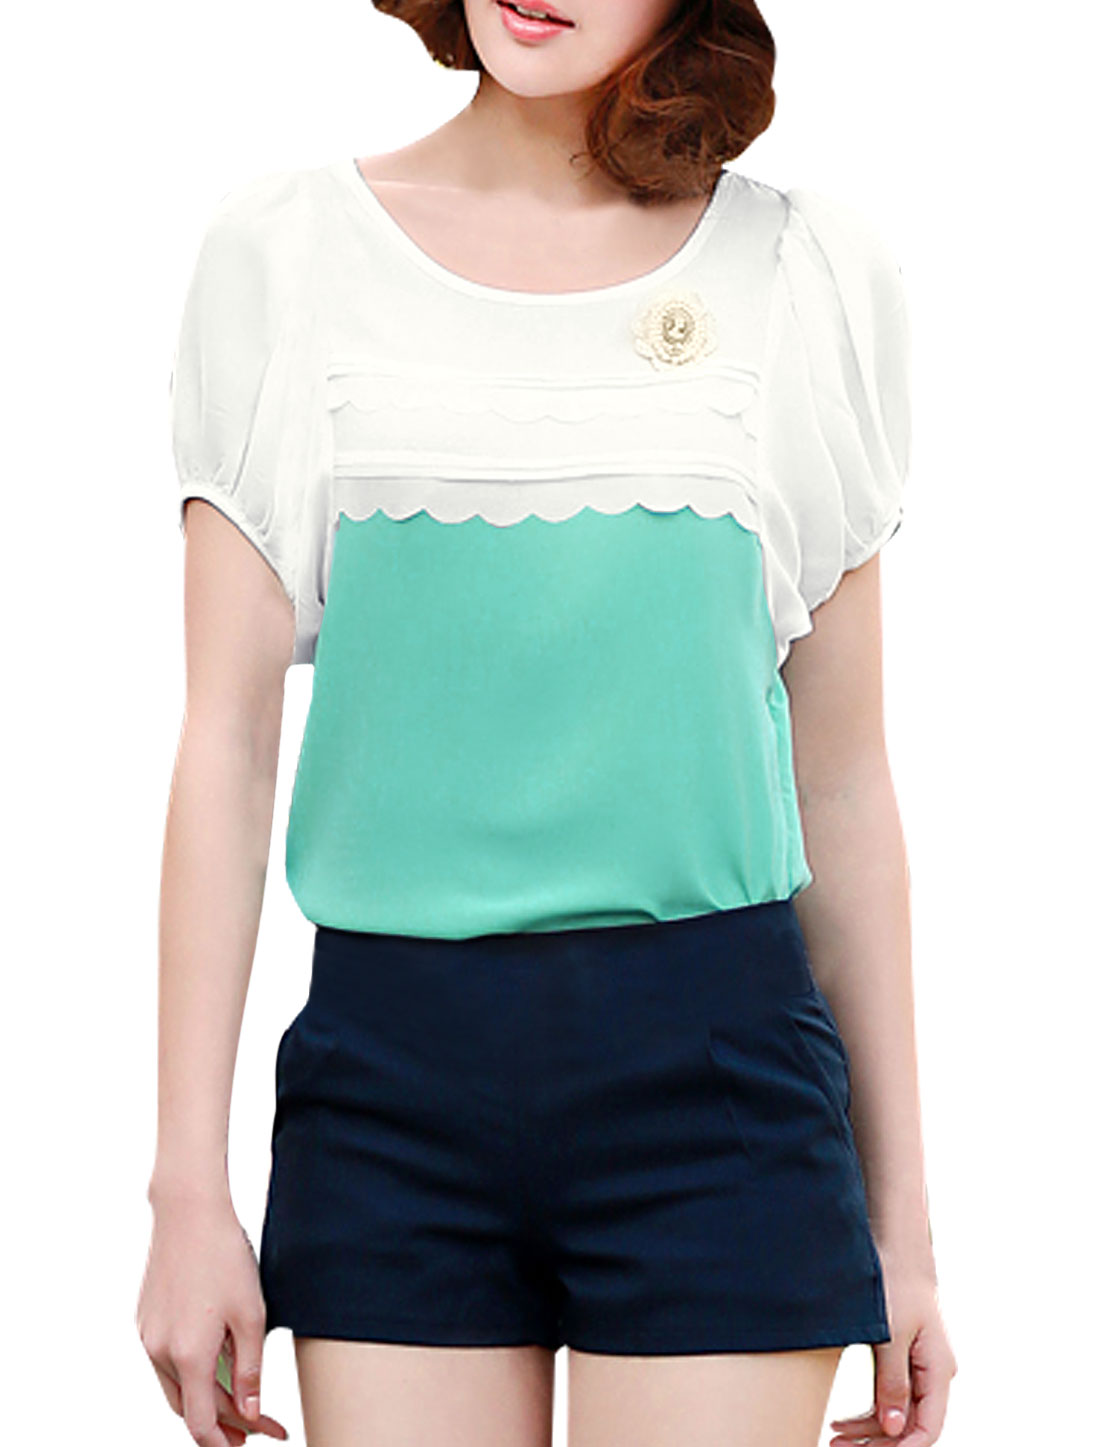 Lady Summer Scalloped Trim Front T-Shirt w Removable Brooch White Mint S